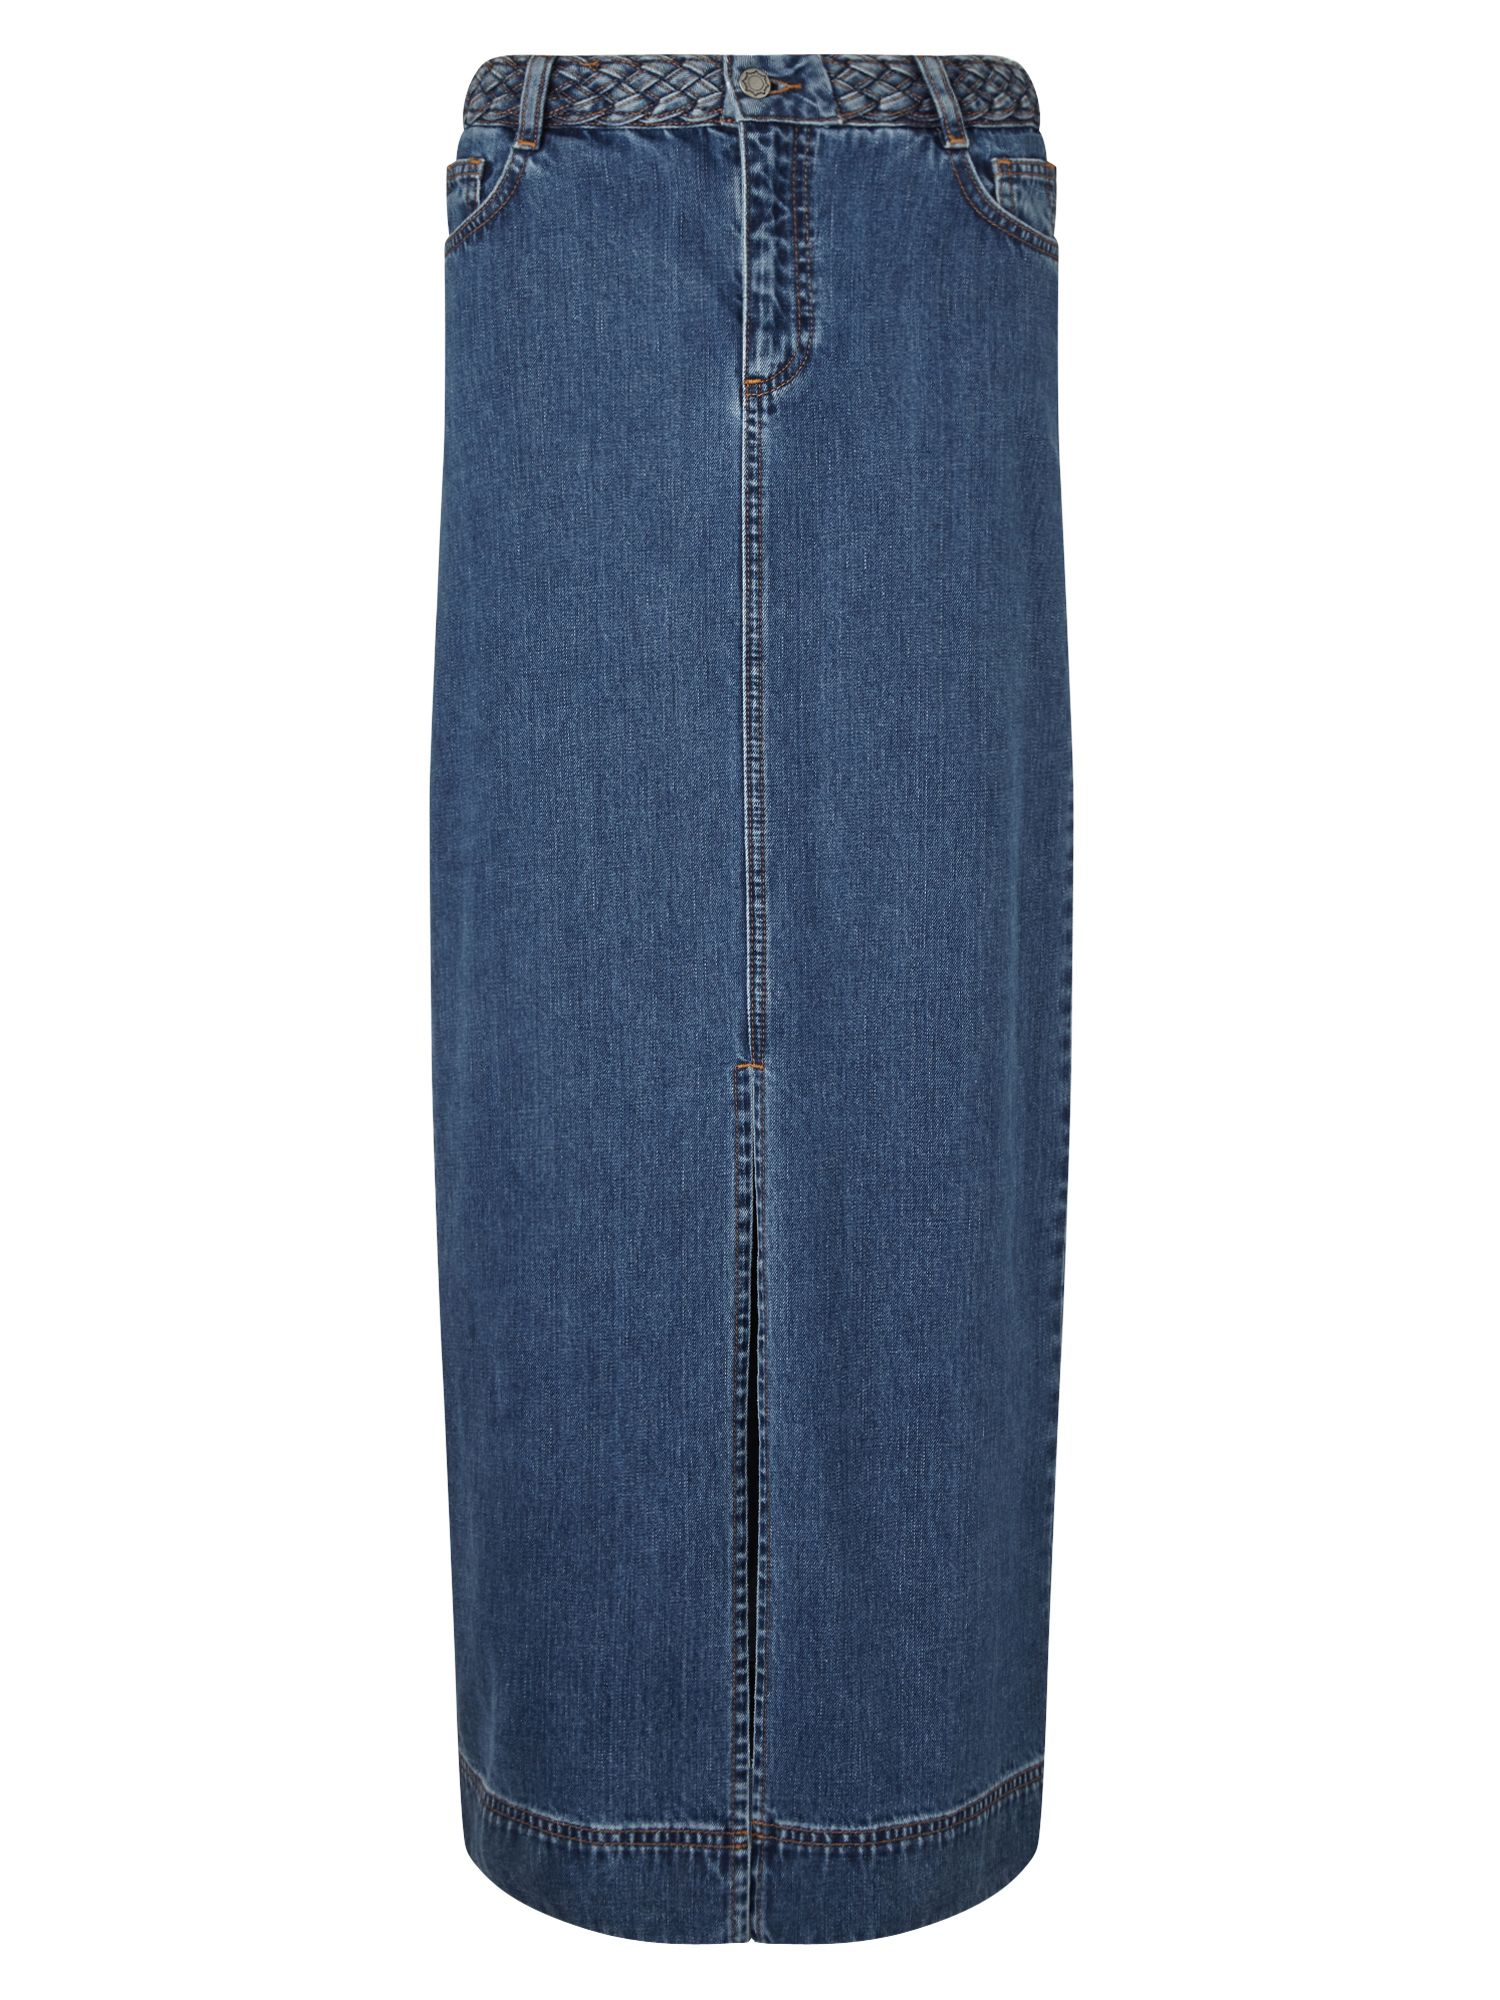 East Denim Maxi Skirt, Indigo